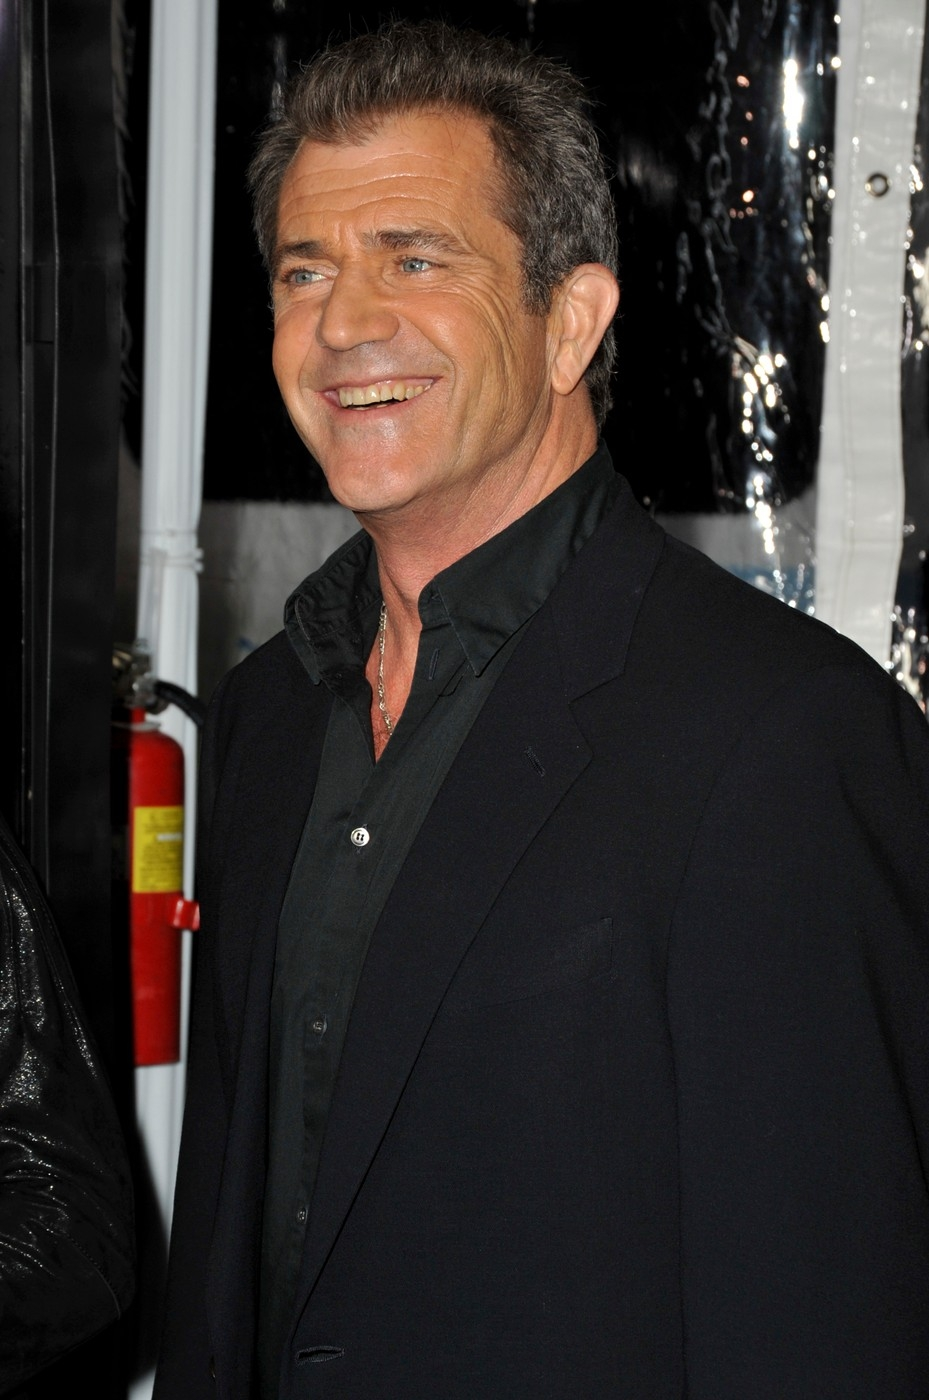 USA - Edge of Darkness premiere in Los Angeles